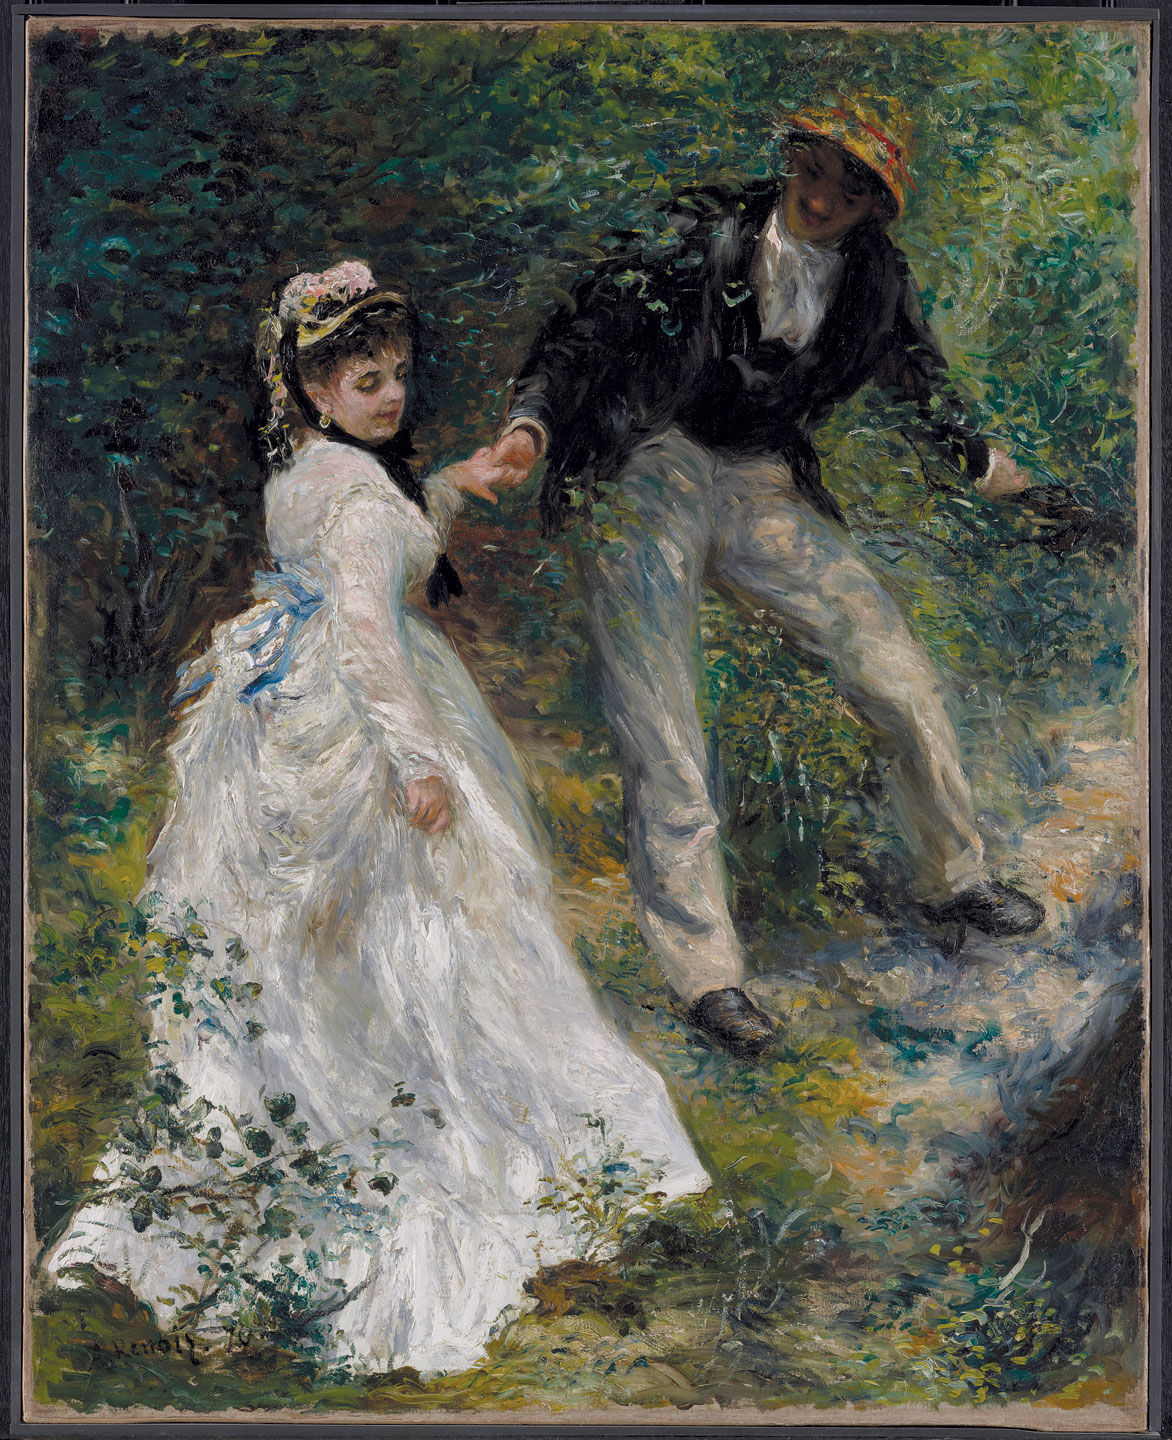 LA PROMENADE by Pierre-Auguste Renoir, French, of oil on canvas, 1870.  Courtesy of   the J. Paul Getty Museum.